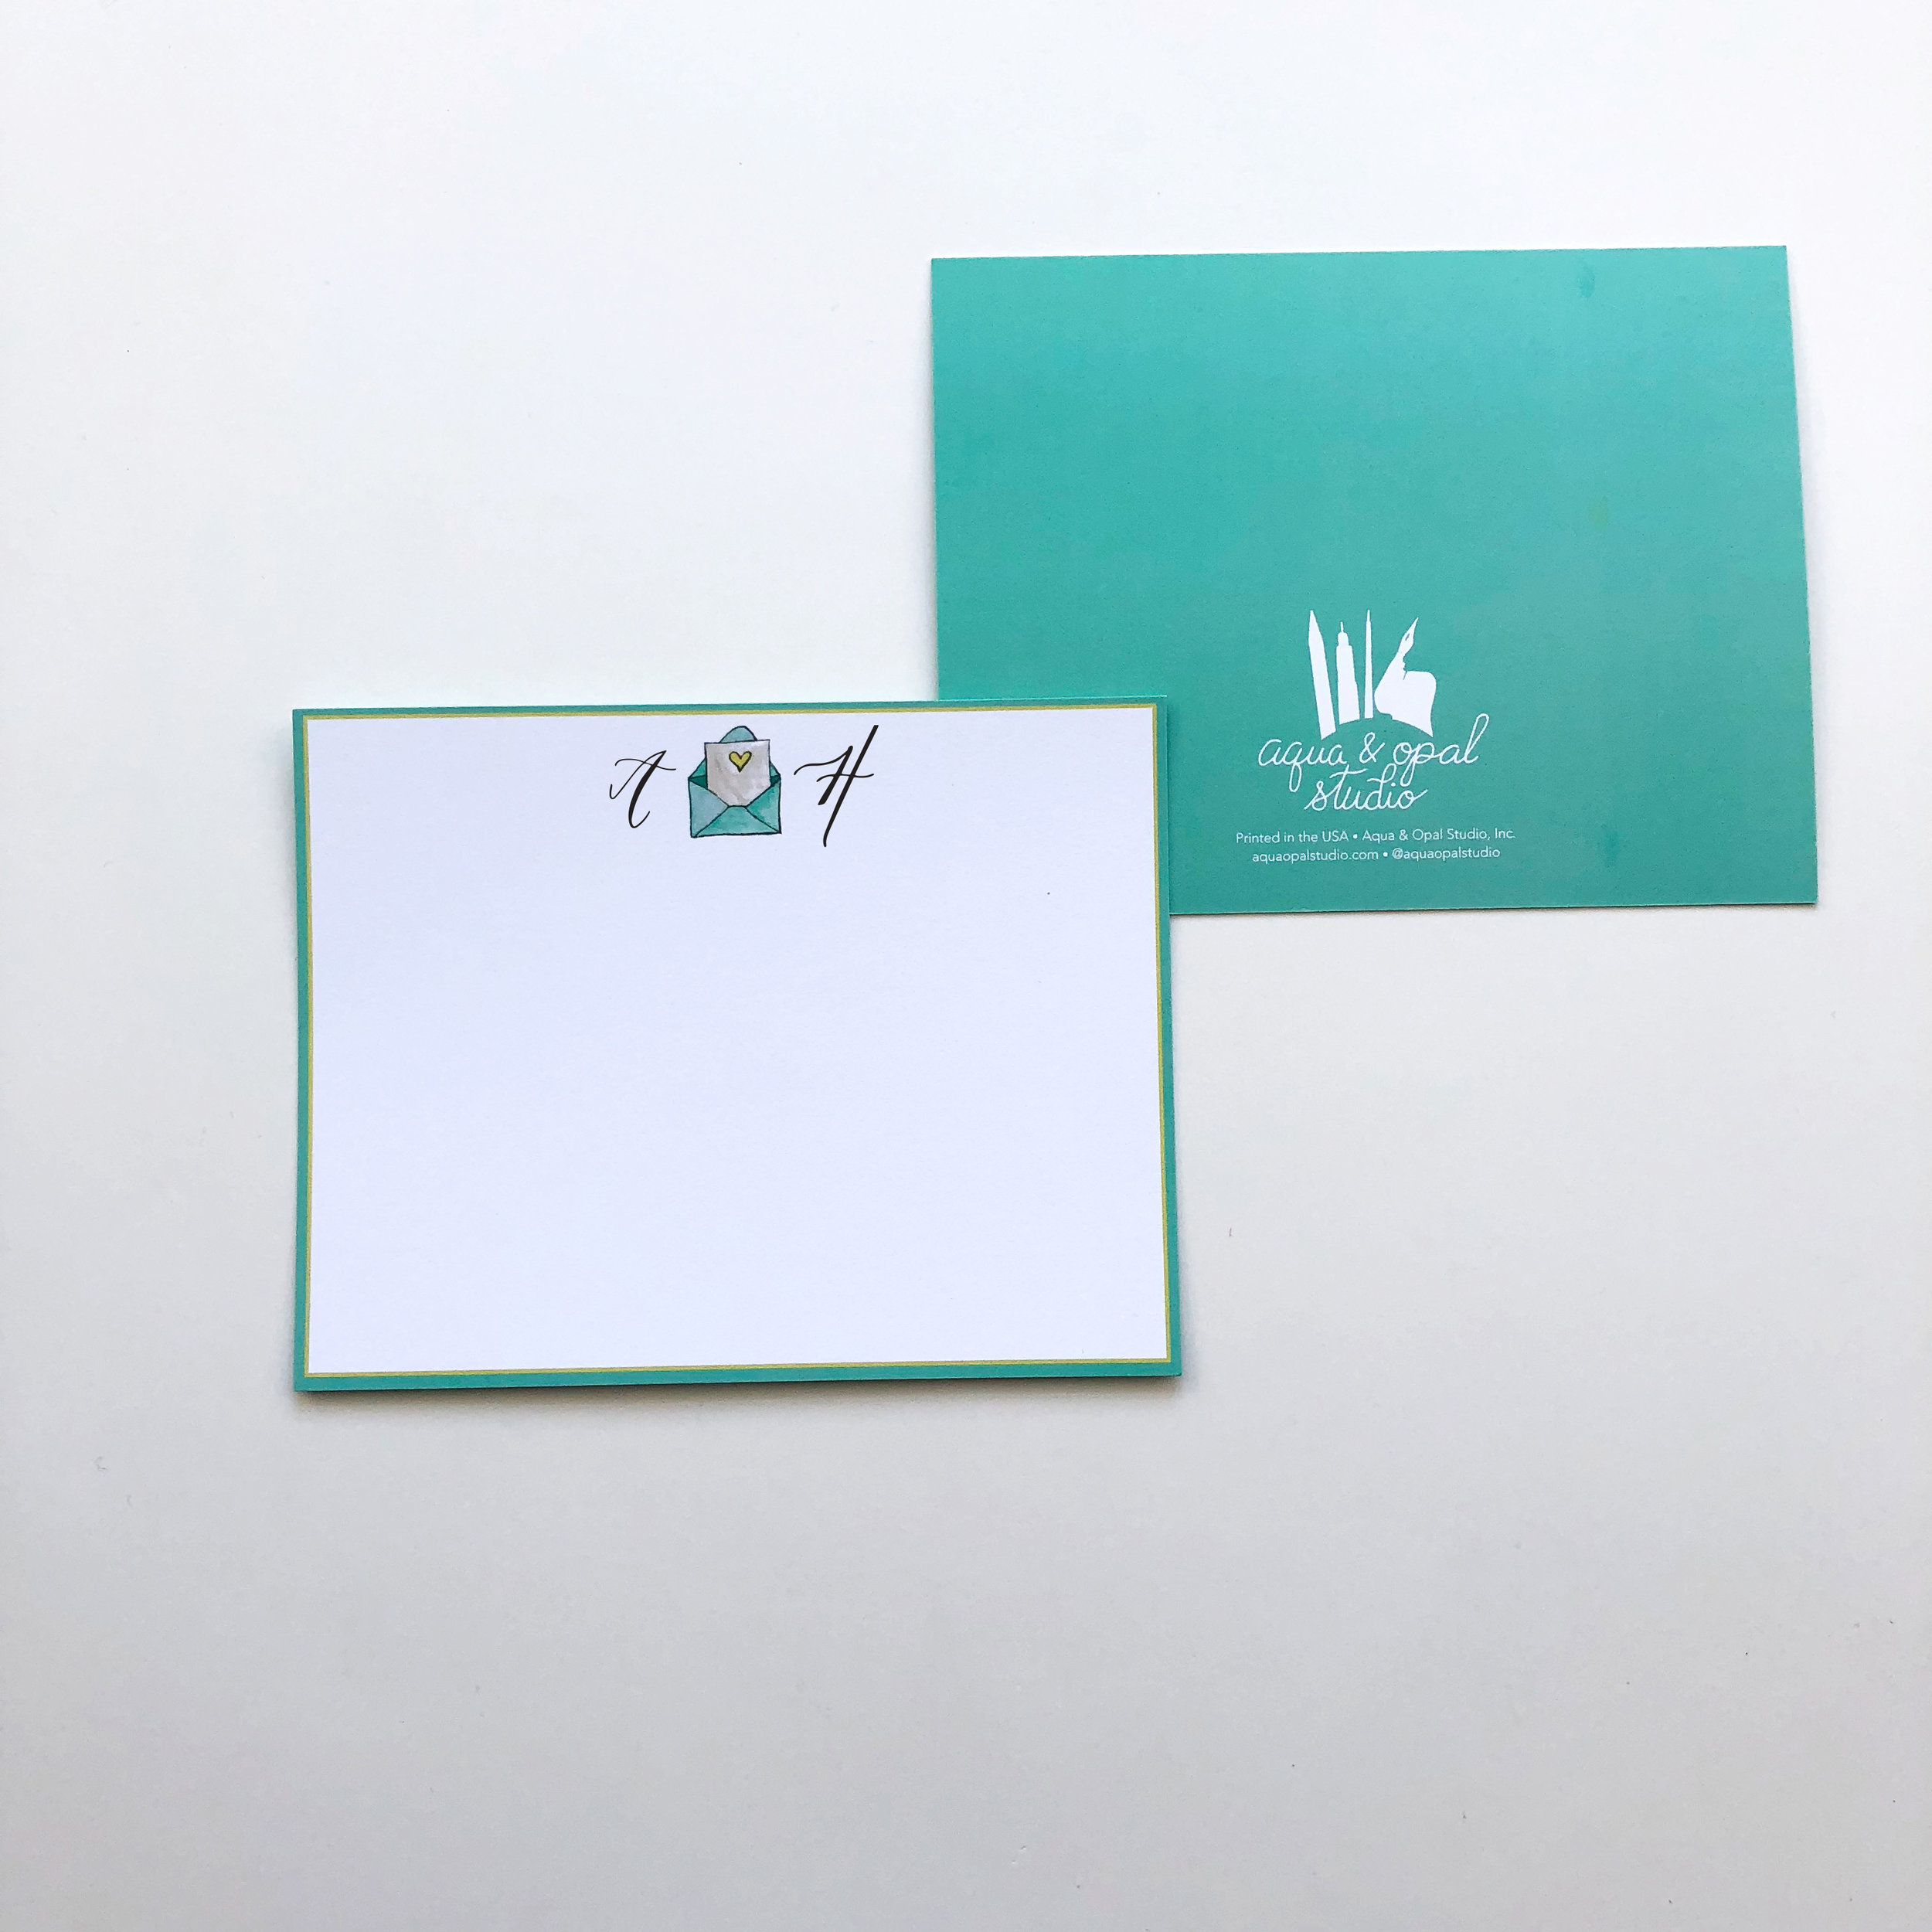 The other new personalized stationery design. They will be sold in sets of 10 and your monogram will be hand-lettered by me on each notecard.